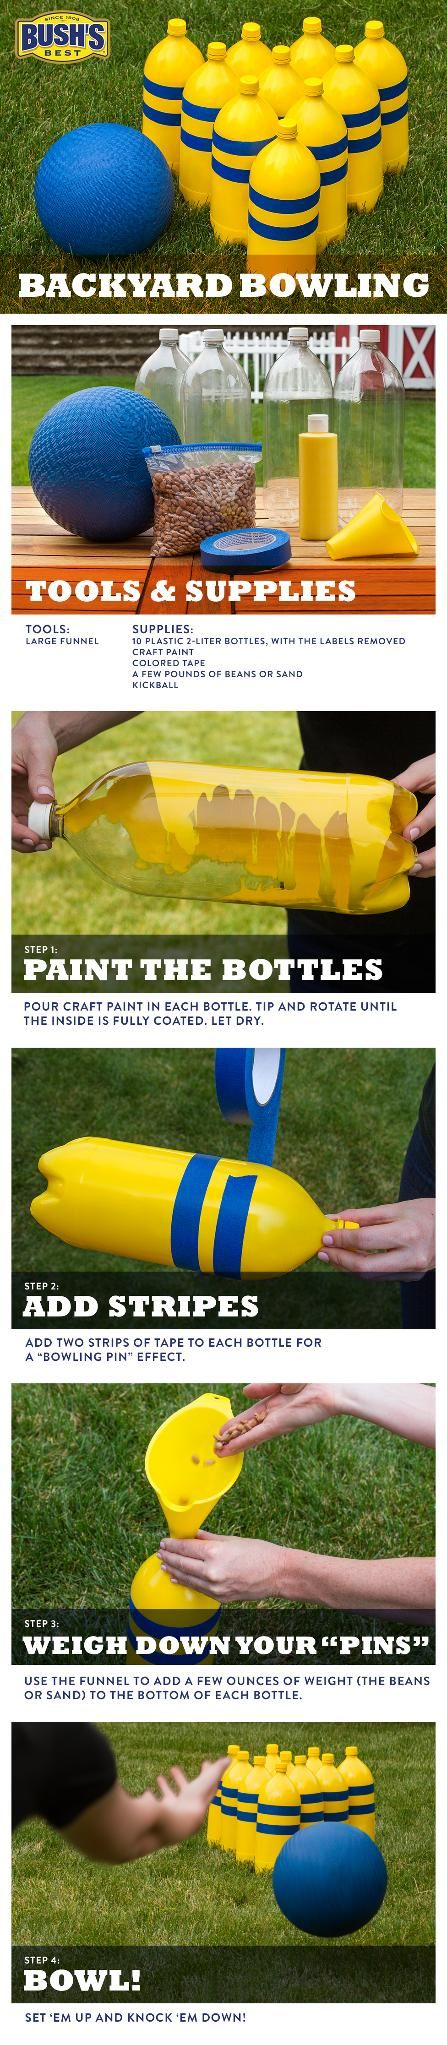 Diy backyard bowling easy to make with kids and a great way to diy backyard bowling easy to make with kids and a great way to recycle the 2 liter bottles leftover after a summer bbq repin and start saving th solutioingenieria Images